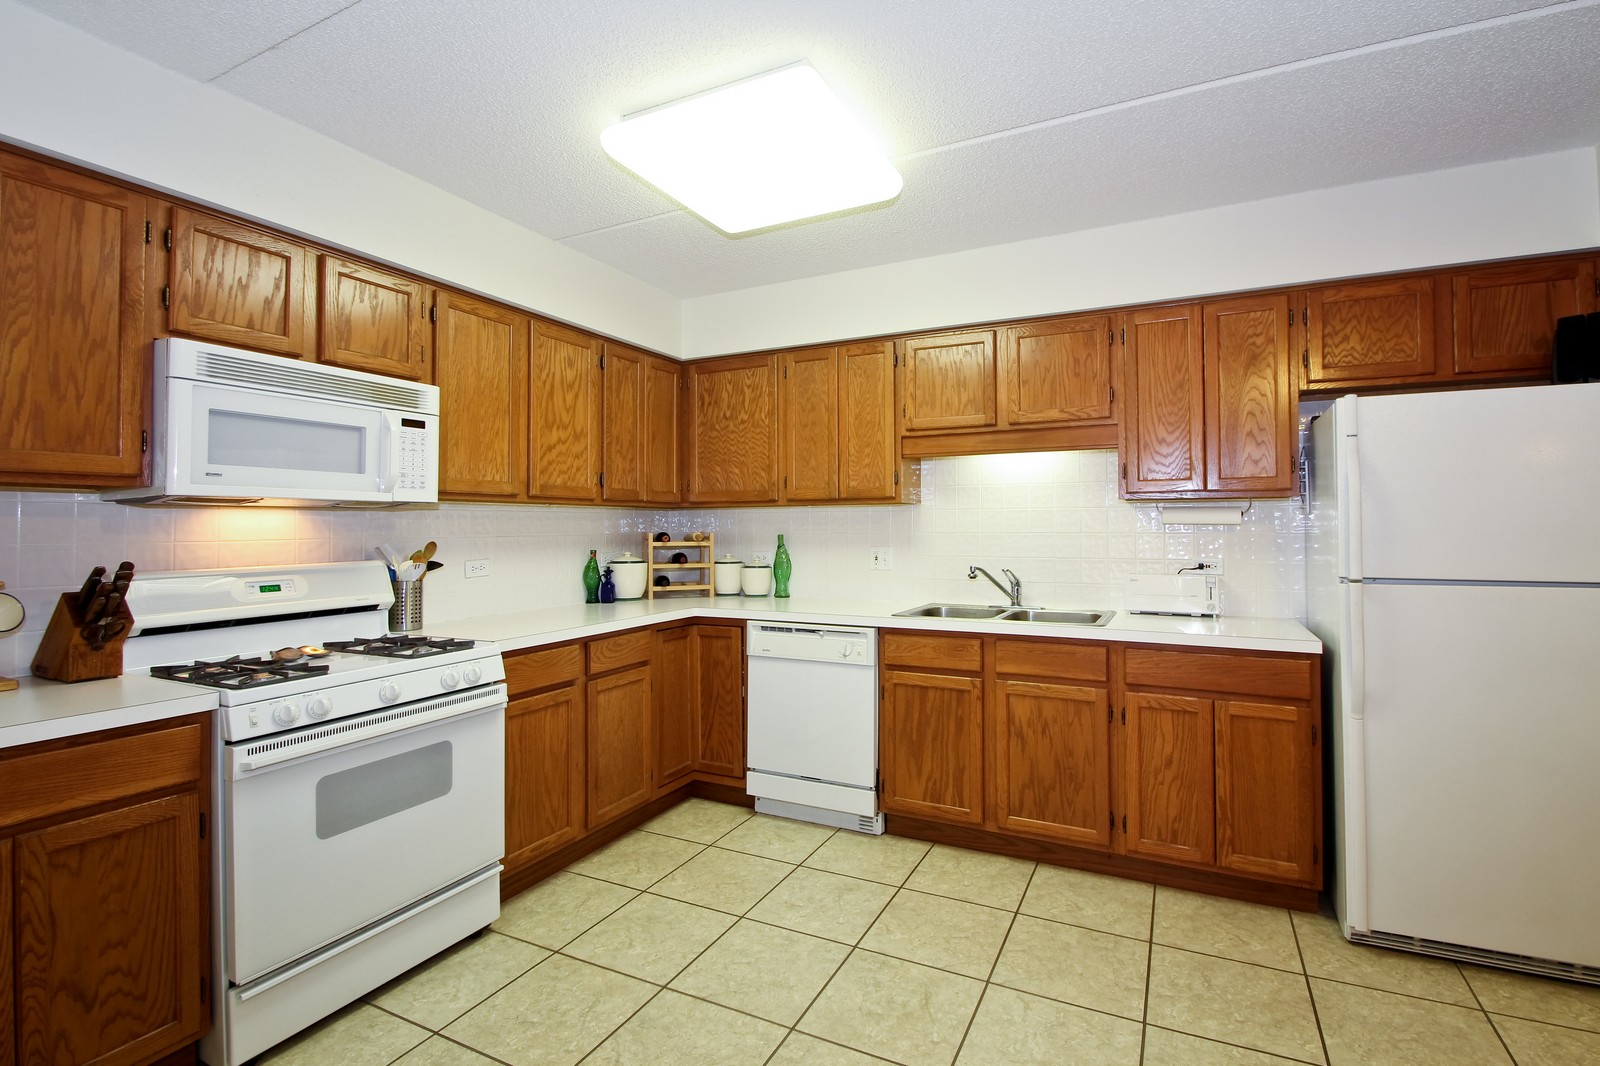 Real Estate Photography - 5340 N Lowell Ave, Unit 206, Chicago, IL, 60630 - Kitchen